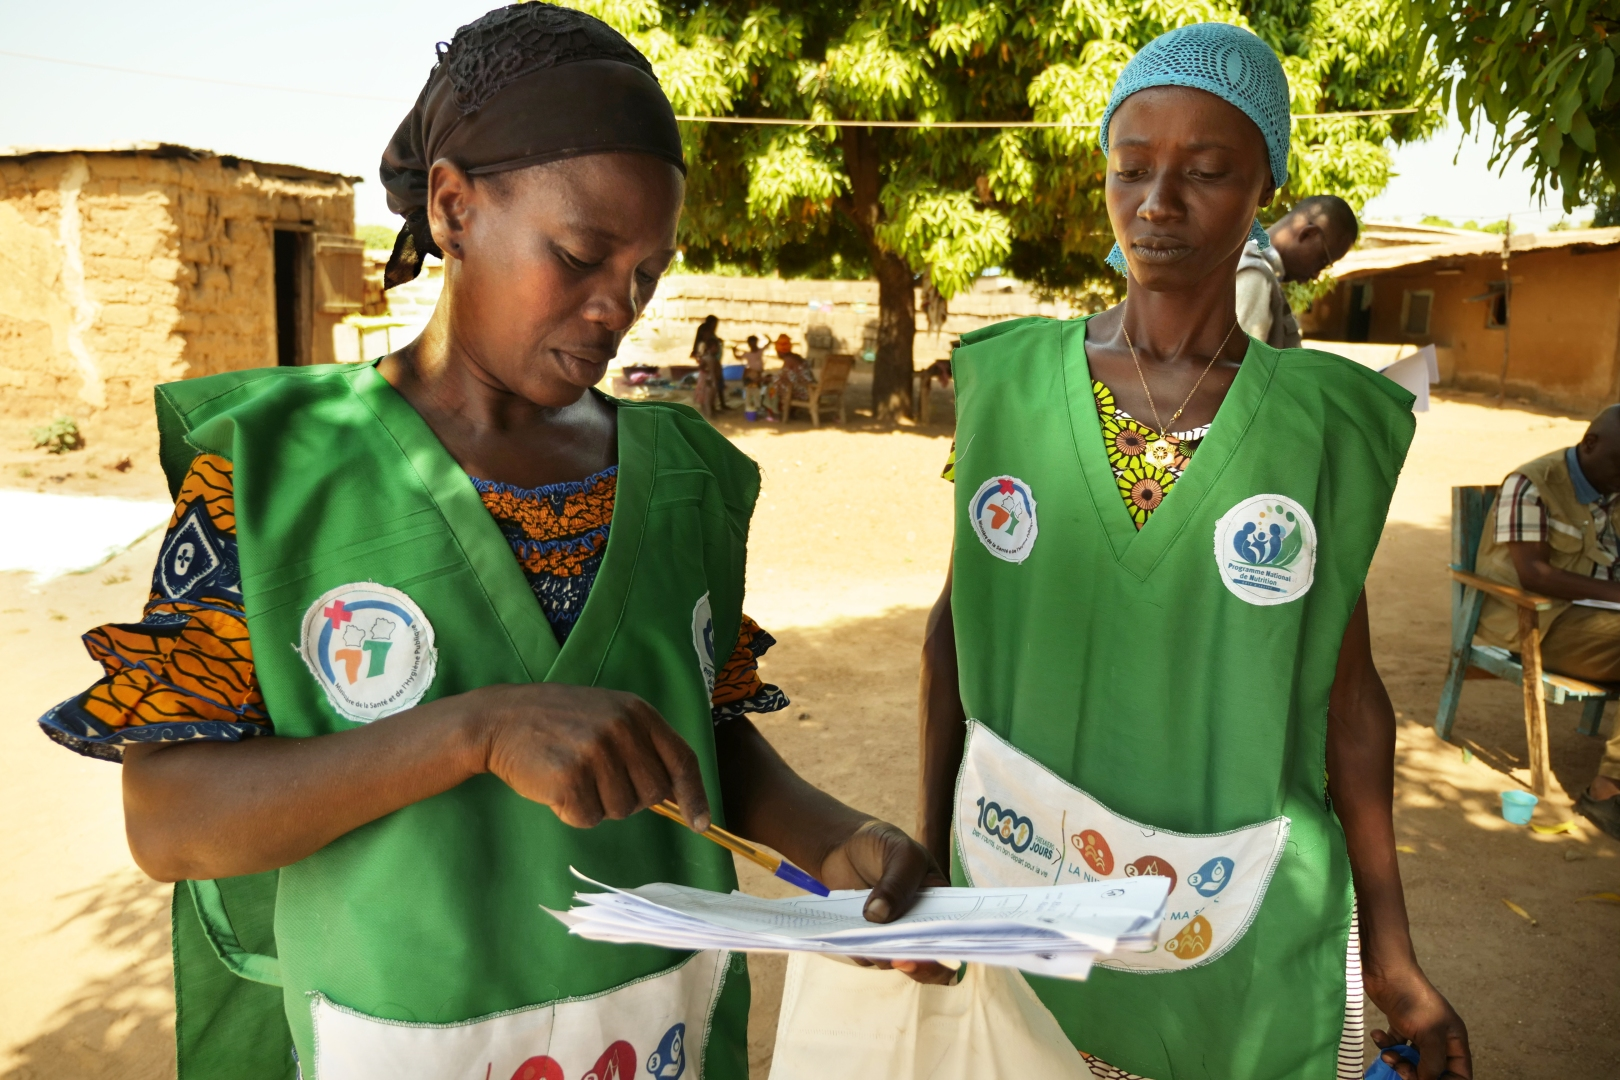 Two community health workers reviewing paperwork